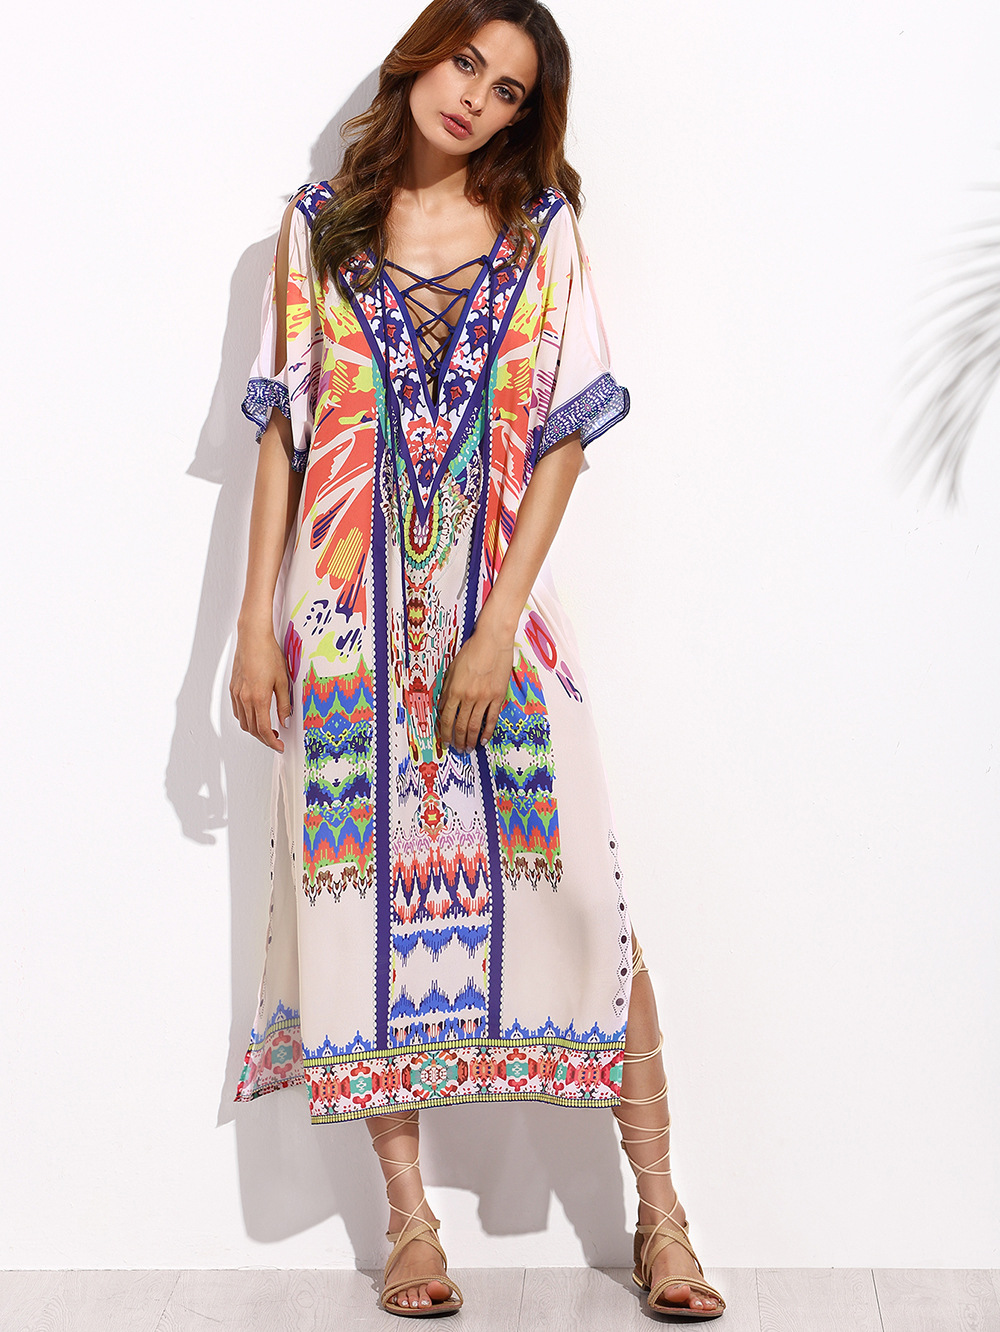 108fb61a6a792 New Fashion 2017 Women S Summer Bohemian Style Dress Sexy Sundresses ...